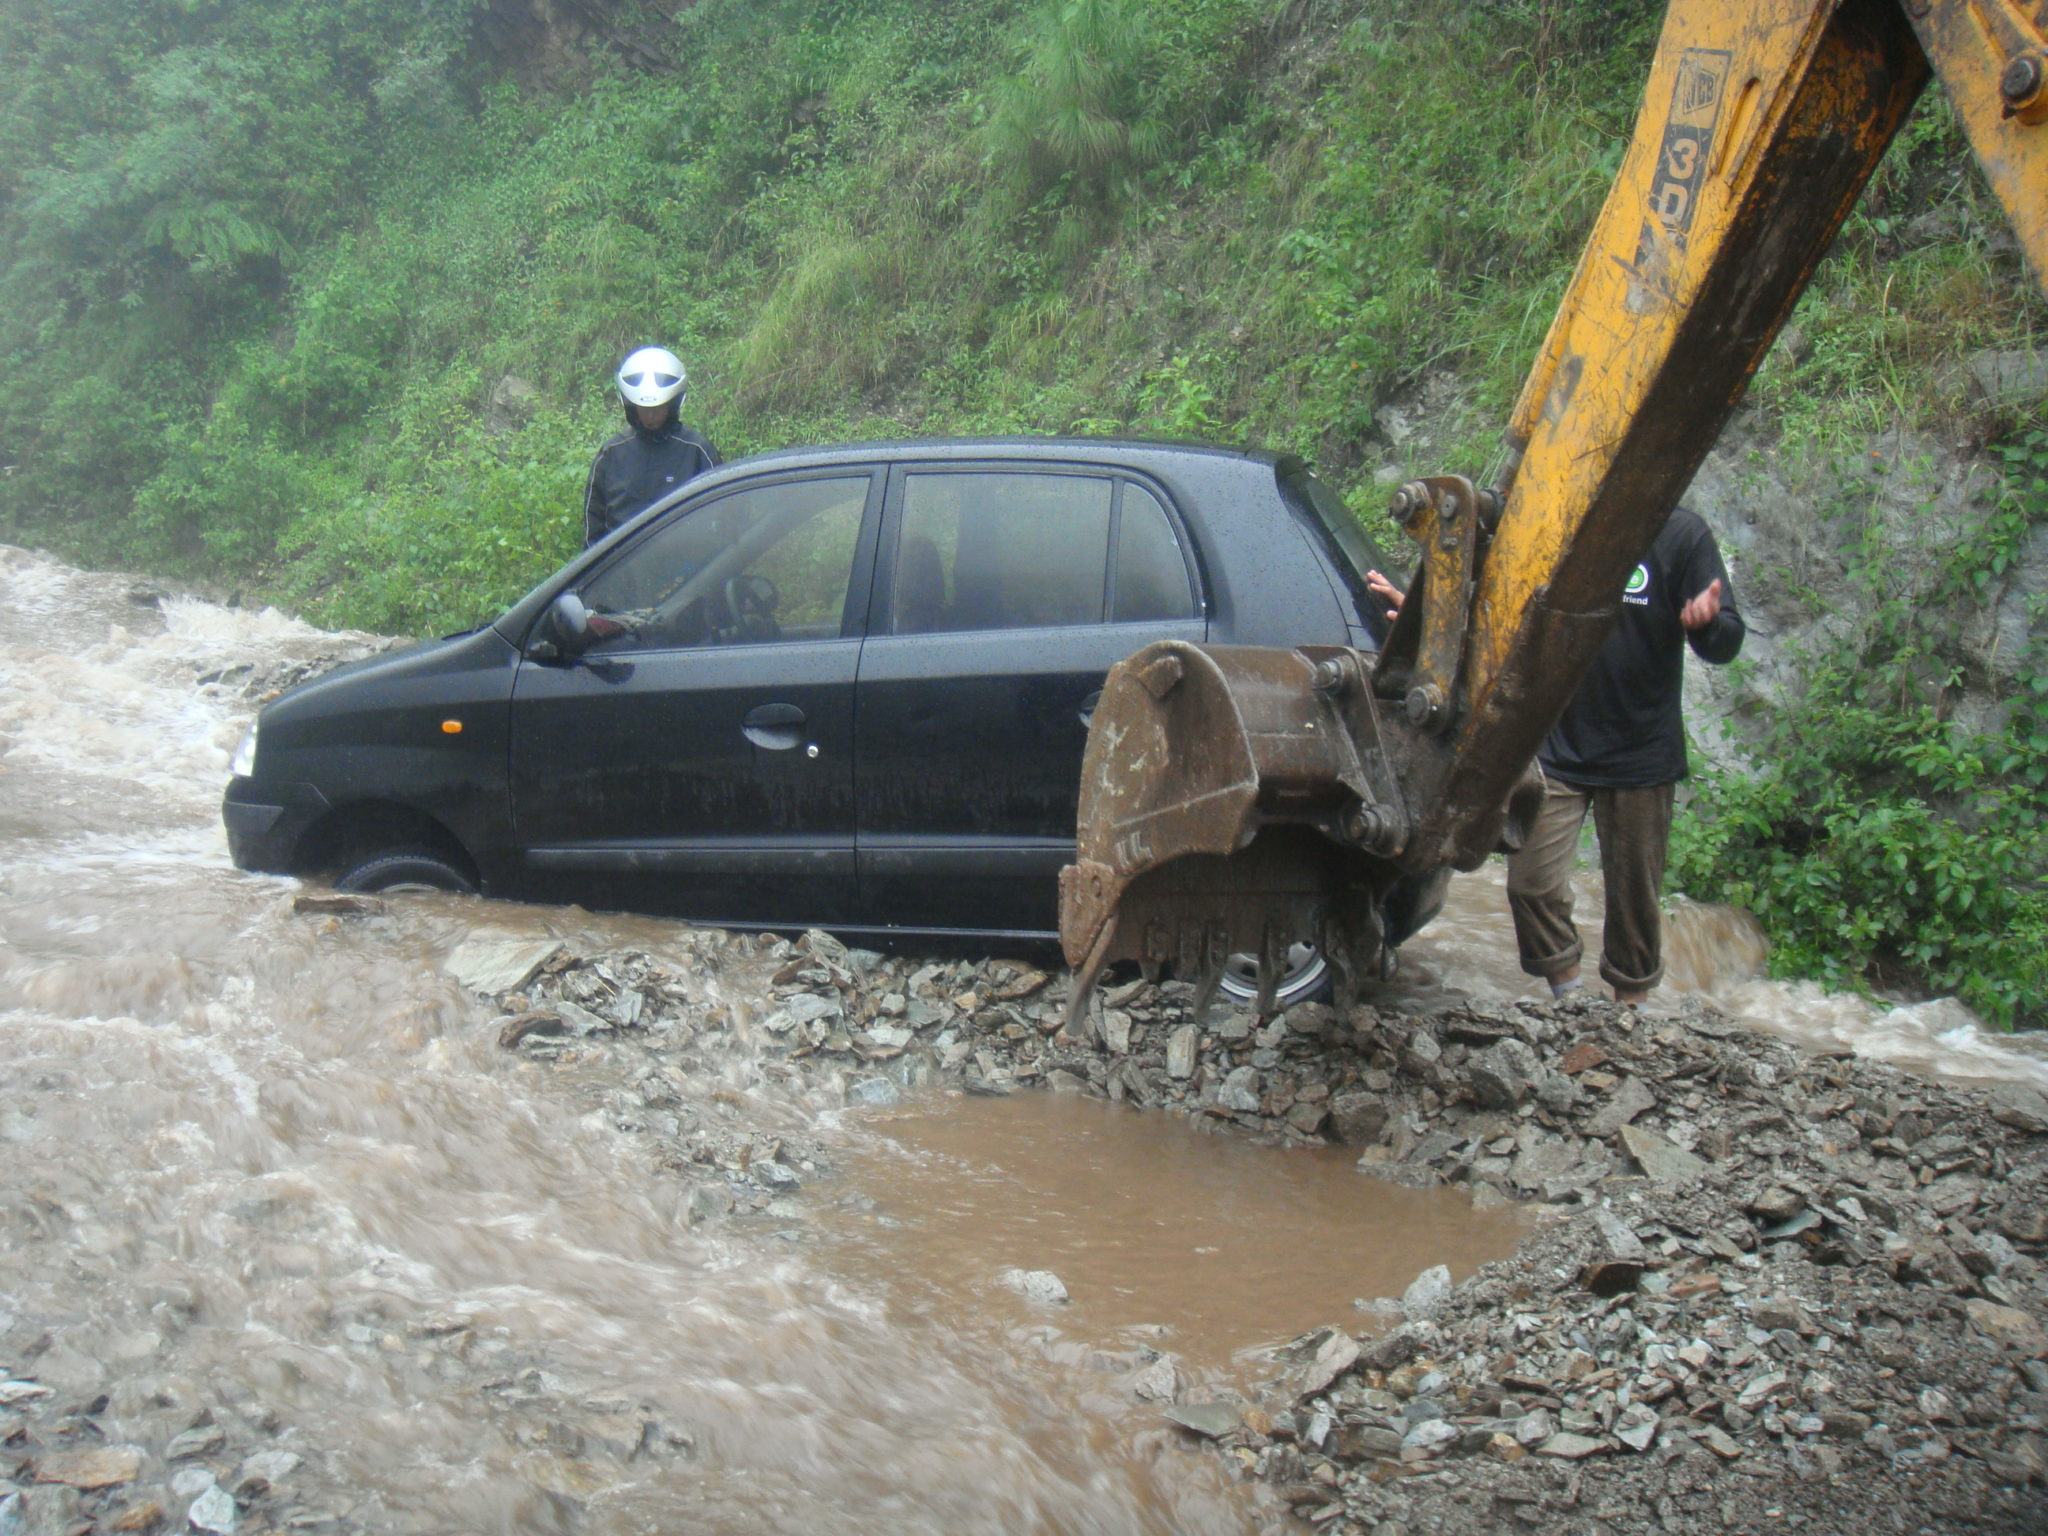 the car stuck in a flowing stream; bulldozer to the rescue